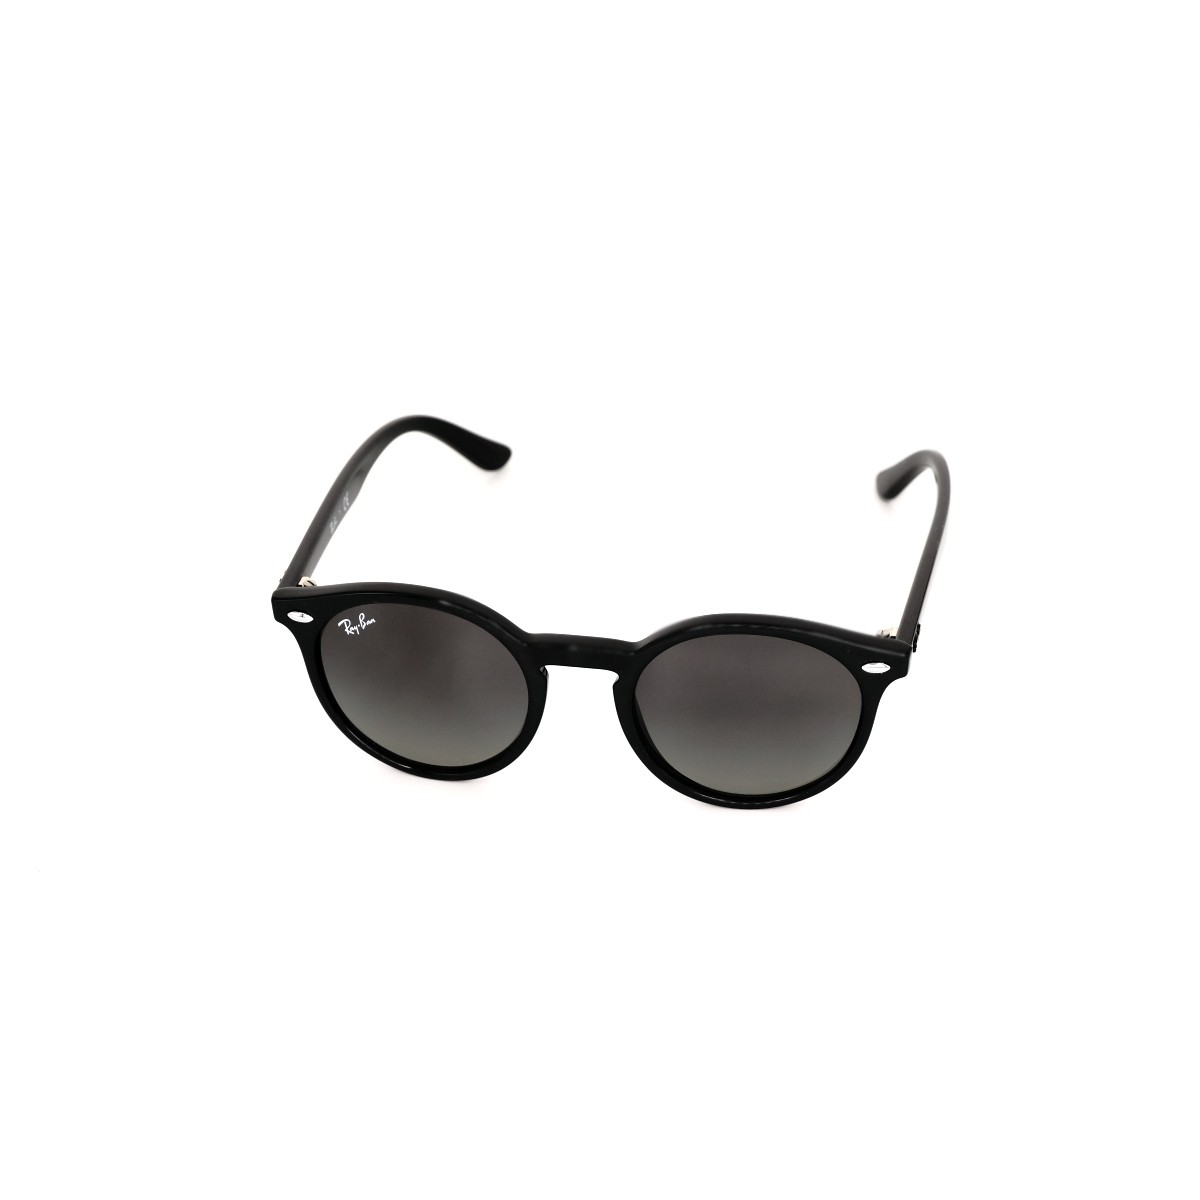 Ray Ban Junior 9064 100/11, 56,00 €, Occhiali Ray Ban Junior Nero a forma Ovale